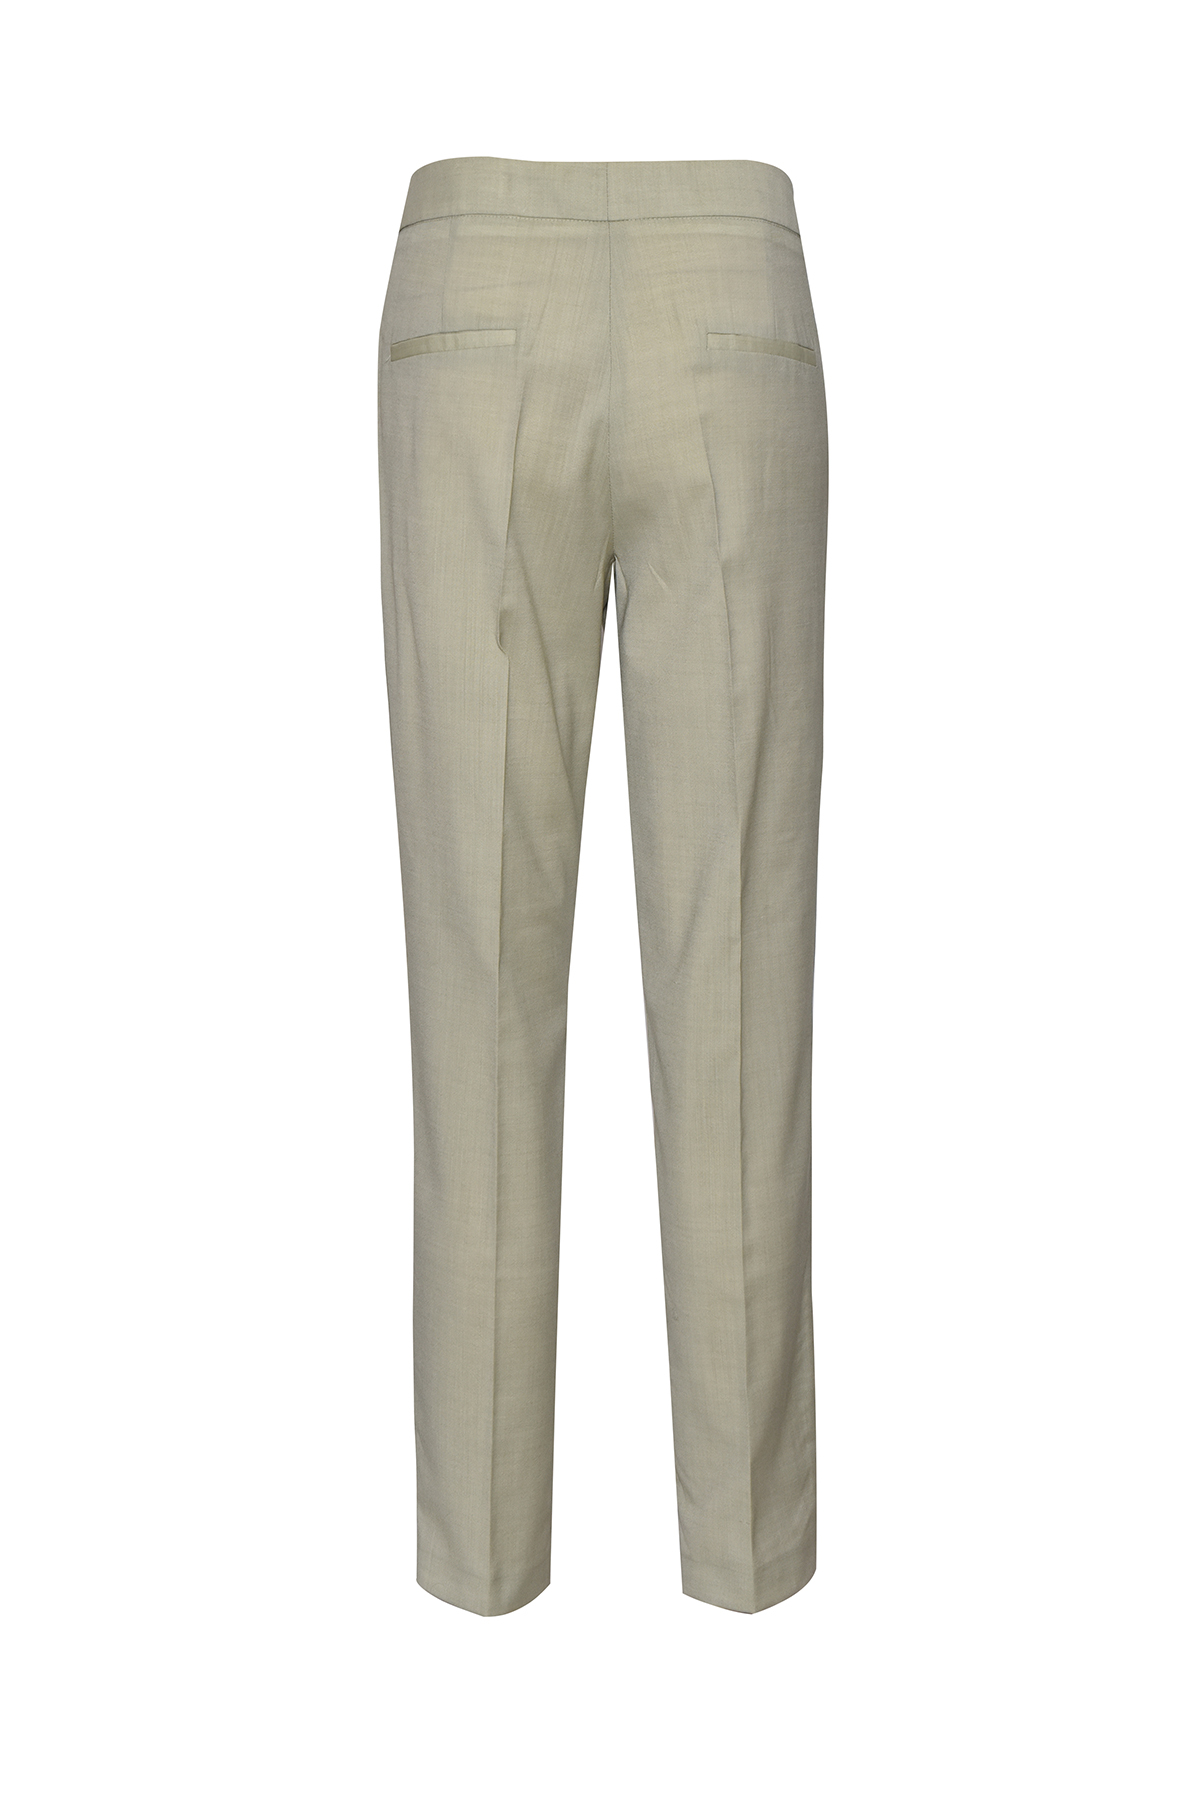 Sigared Pistachio Pants by Sorbé on curated-crowd.com